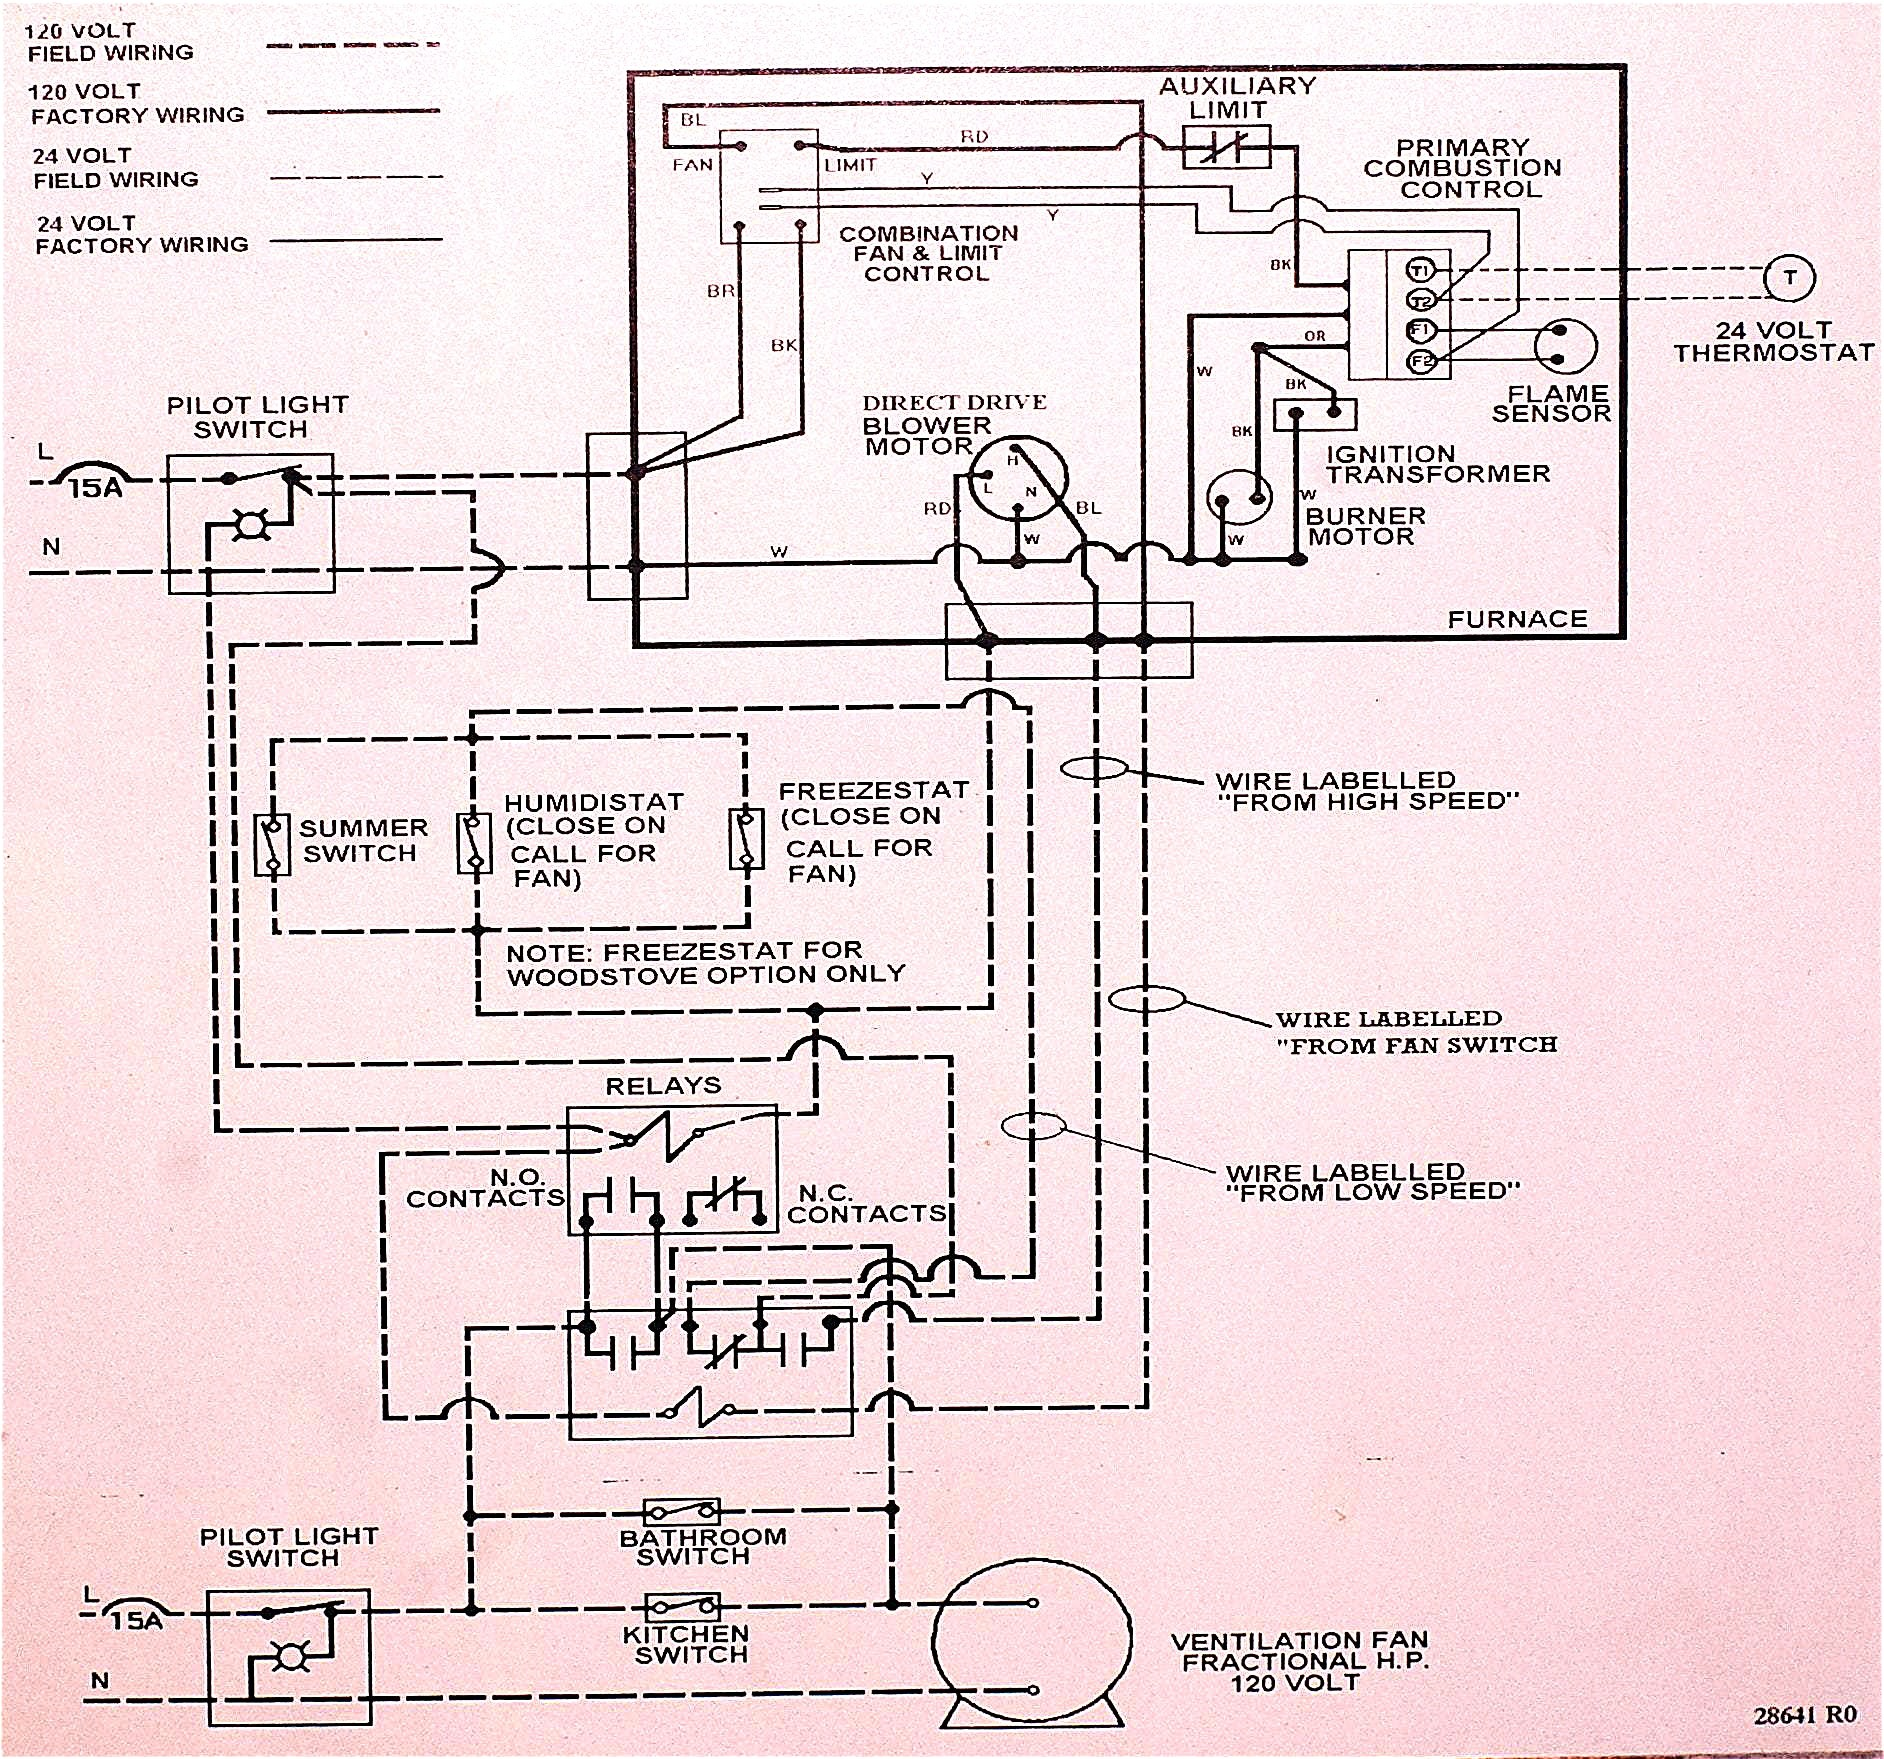 Thermostat Wiring Diagram Moreover Bryant Heat Pump Thermostat Wiring